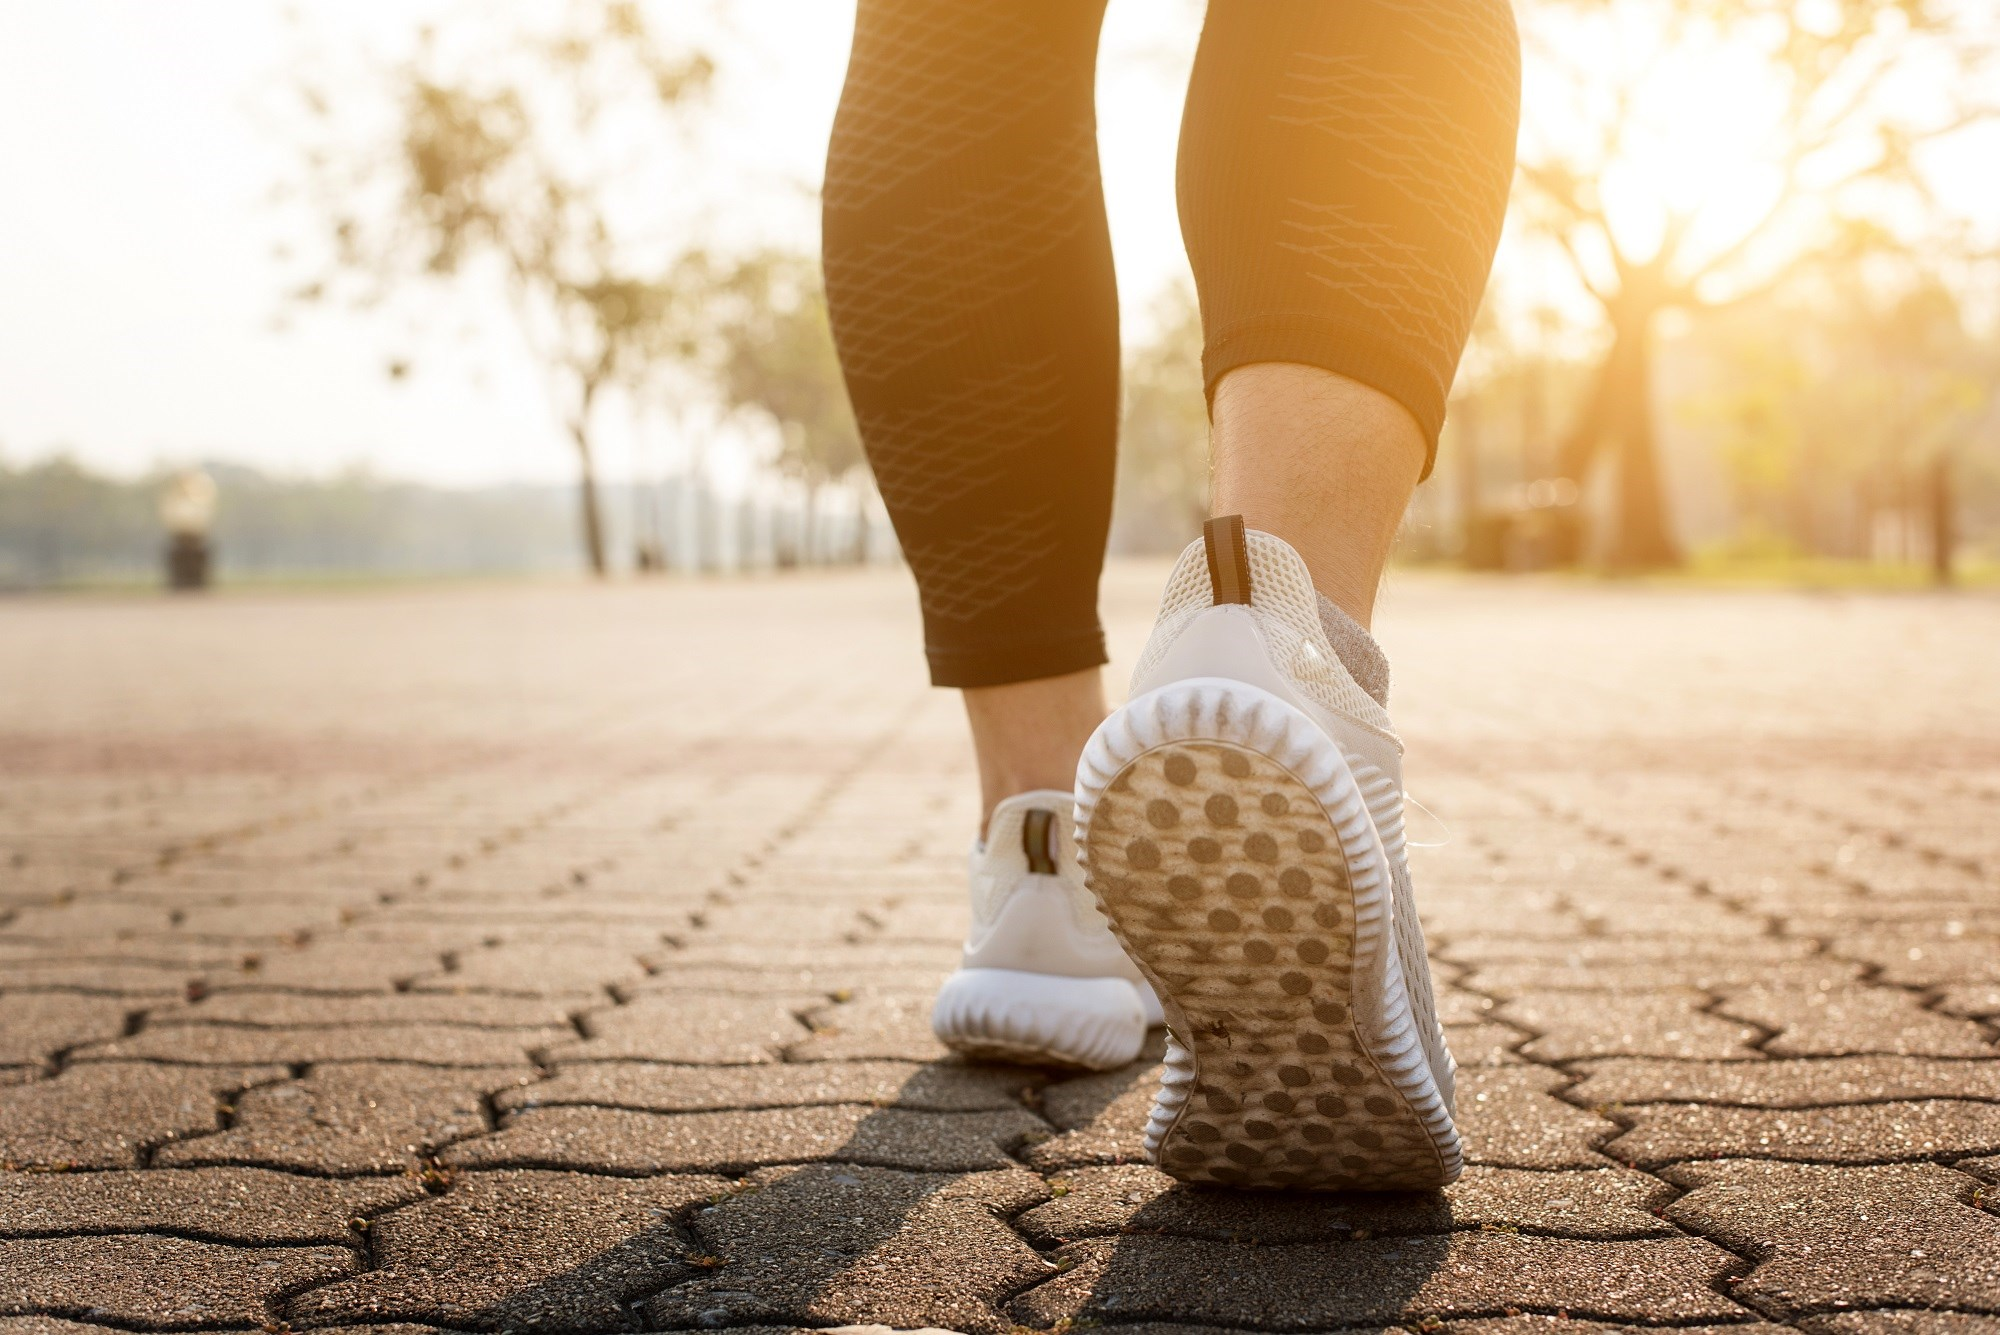 Overall, increased physical activity was associated with a reduced vascular risk factor profile in patients with multiple sclerosis.